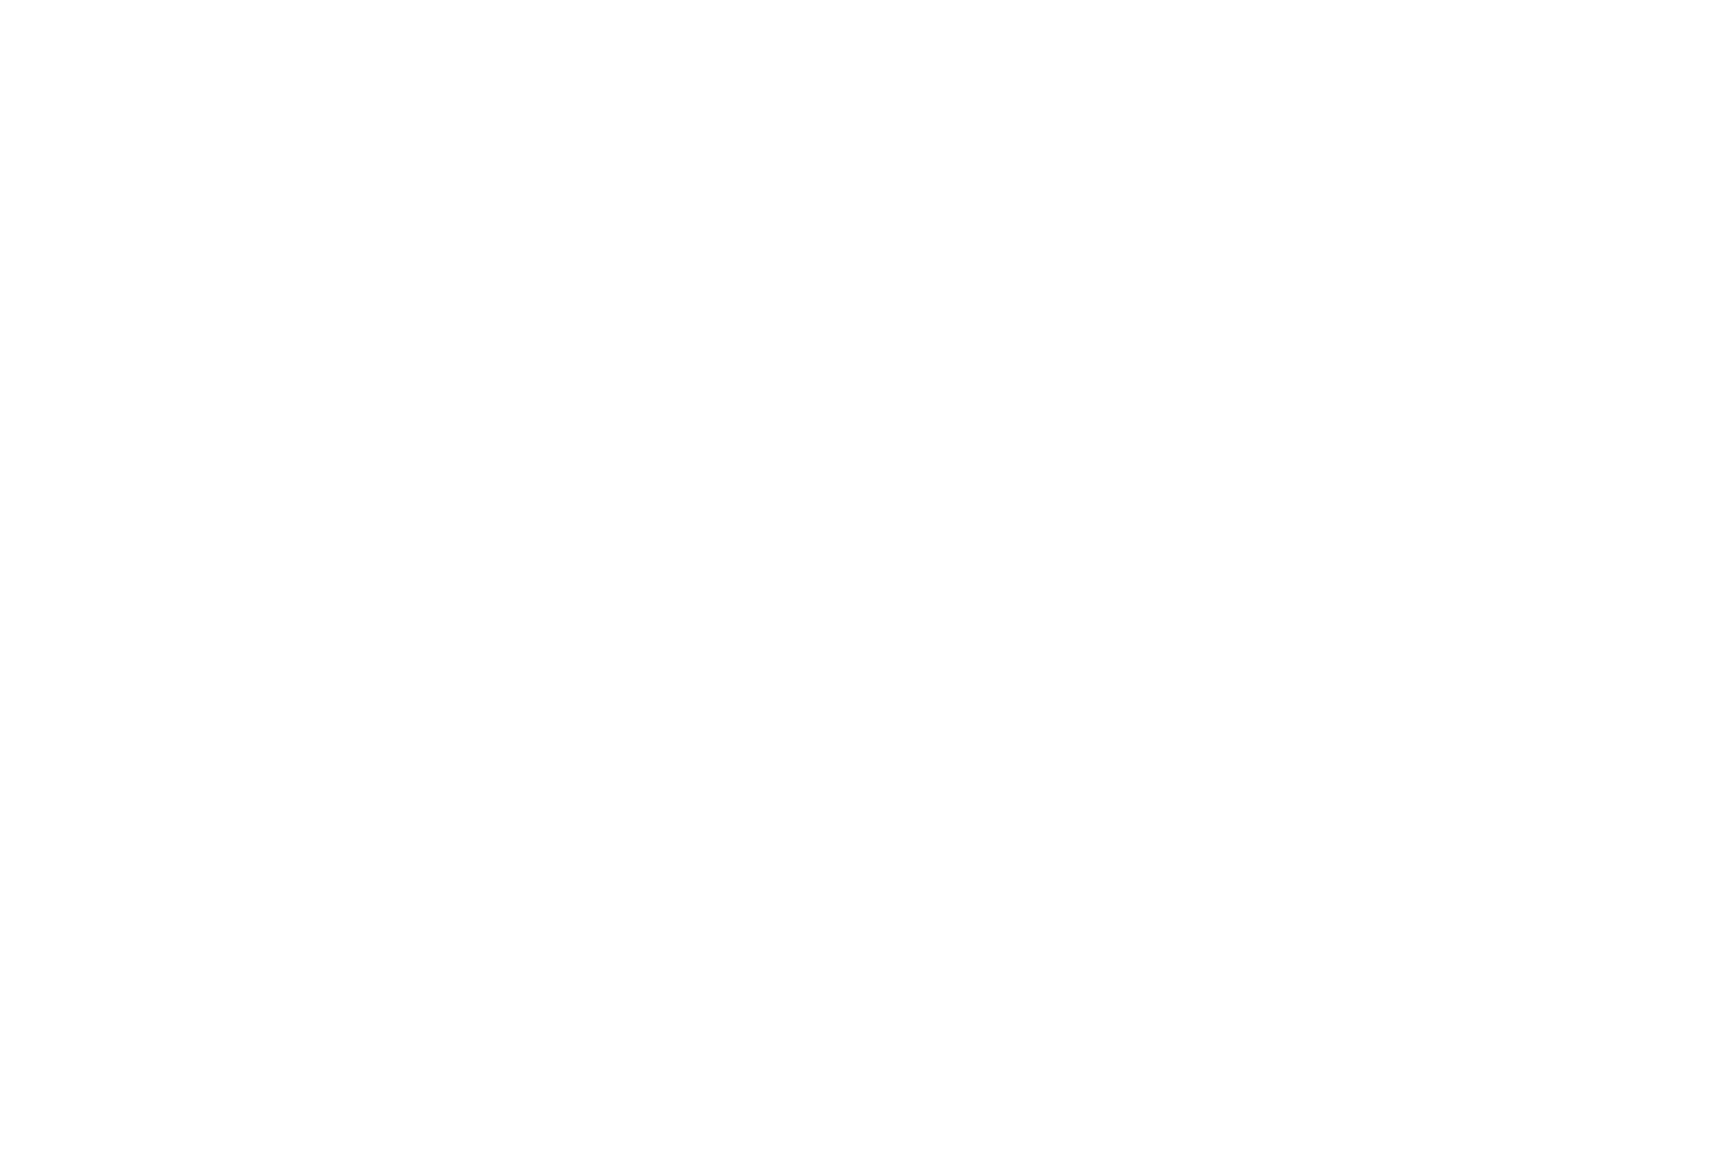 OFFICIAL SELECTION - Fake Flesh Film Fest - 2017 (1).png